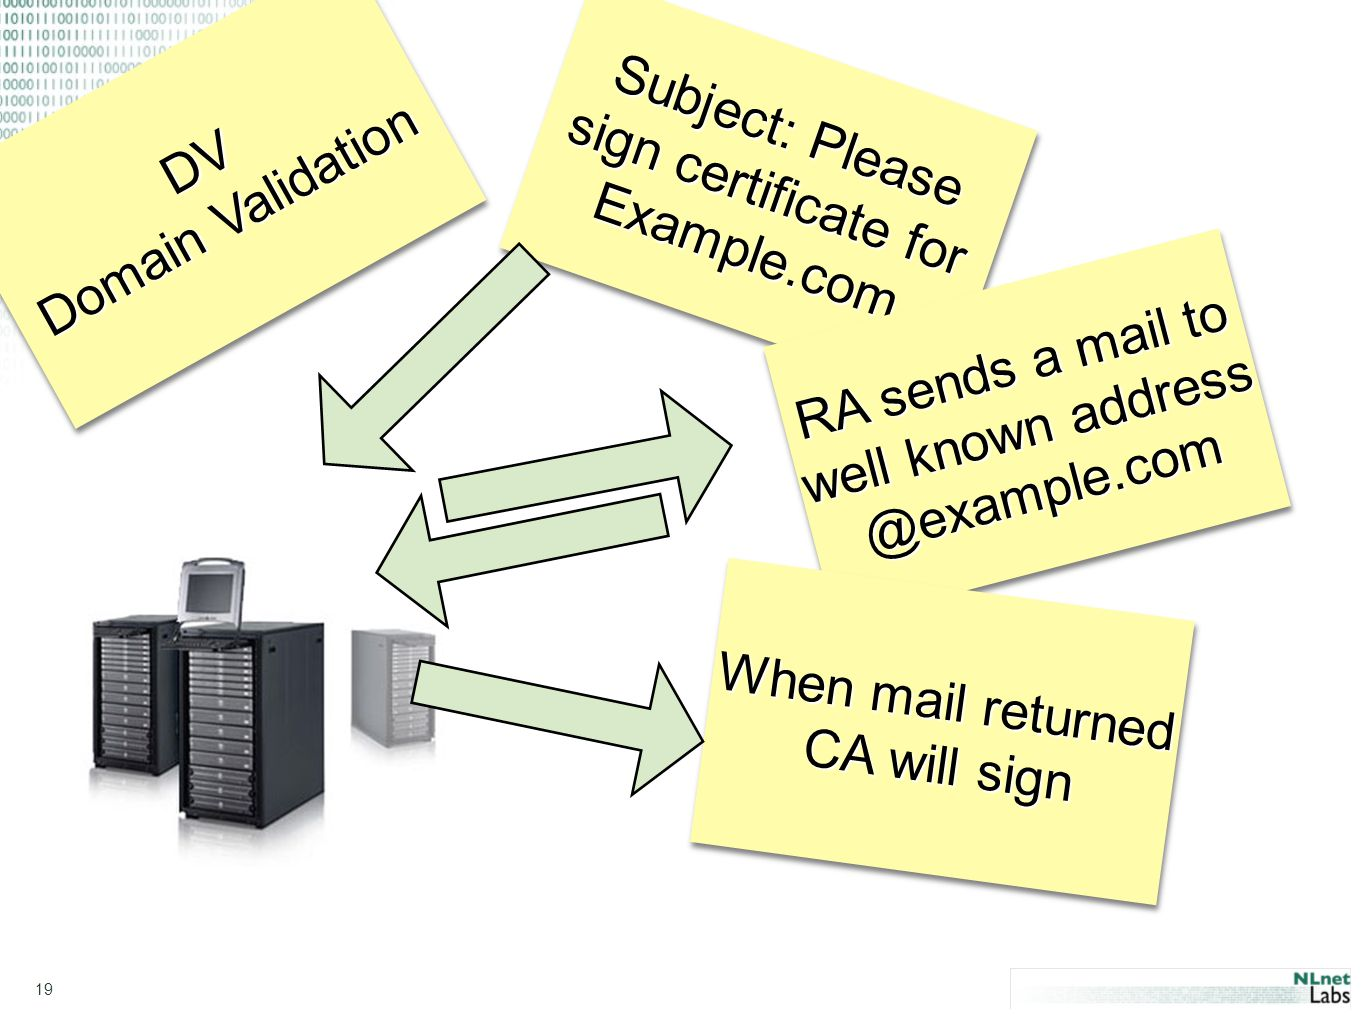 19 DV Domain Validation DV Subject: Please sign certificate for Example.com Example.com RA sends a mail to well  When mail returned CA will sign